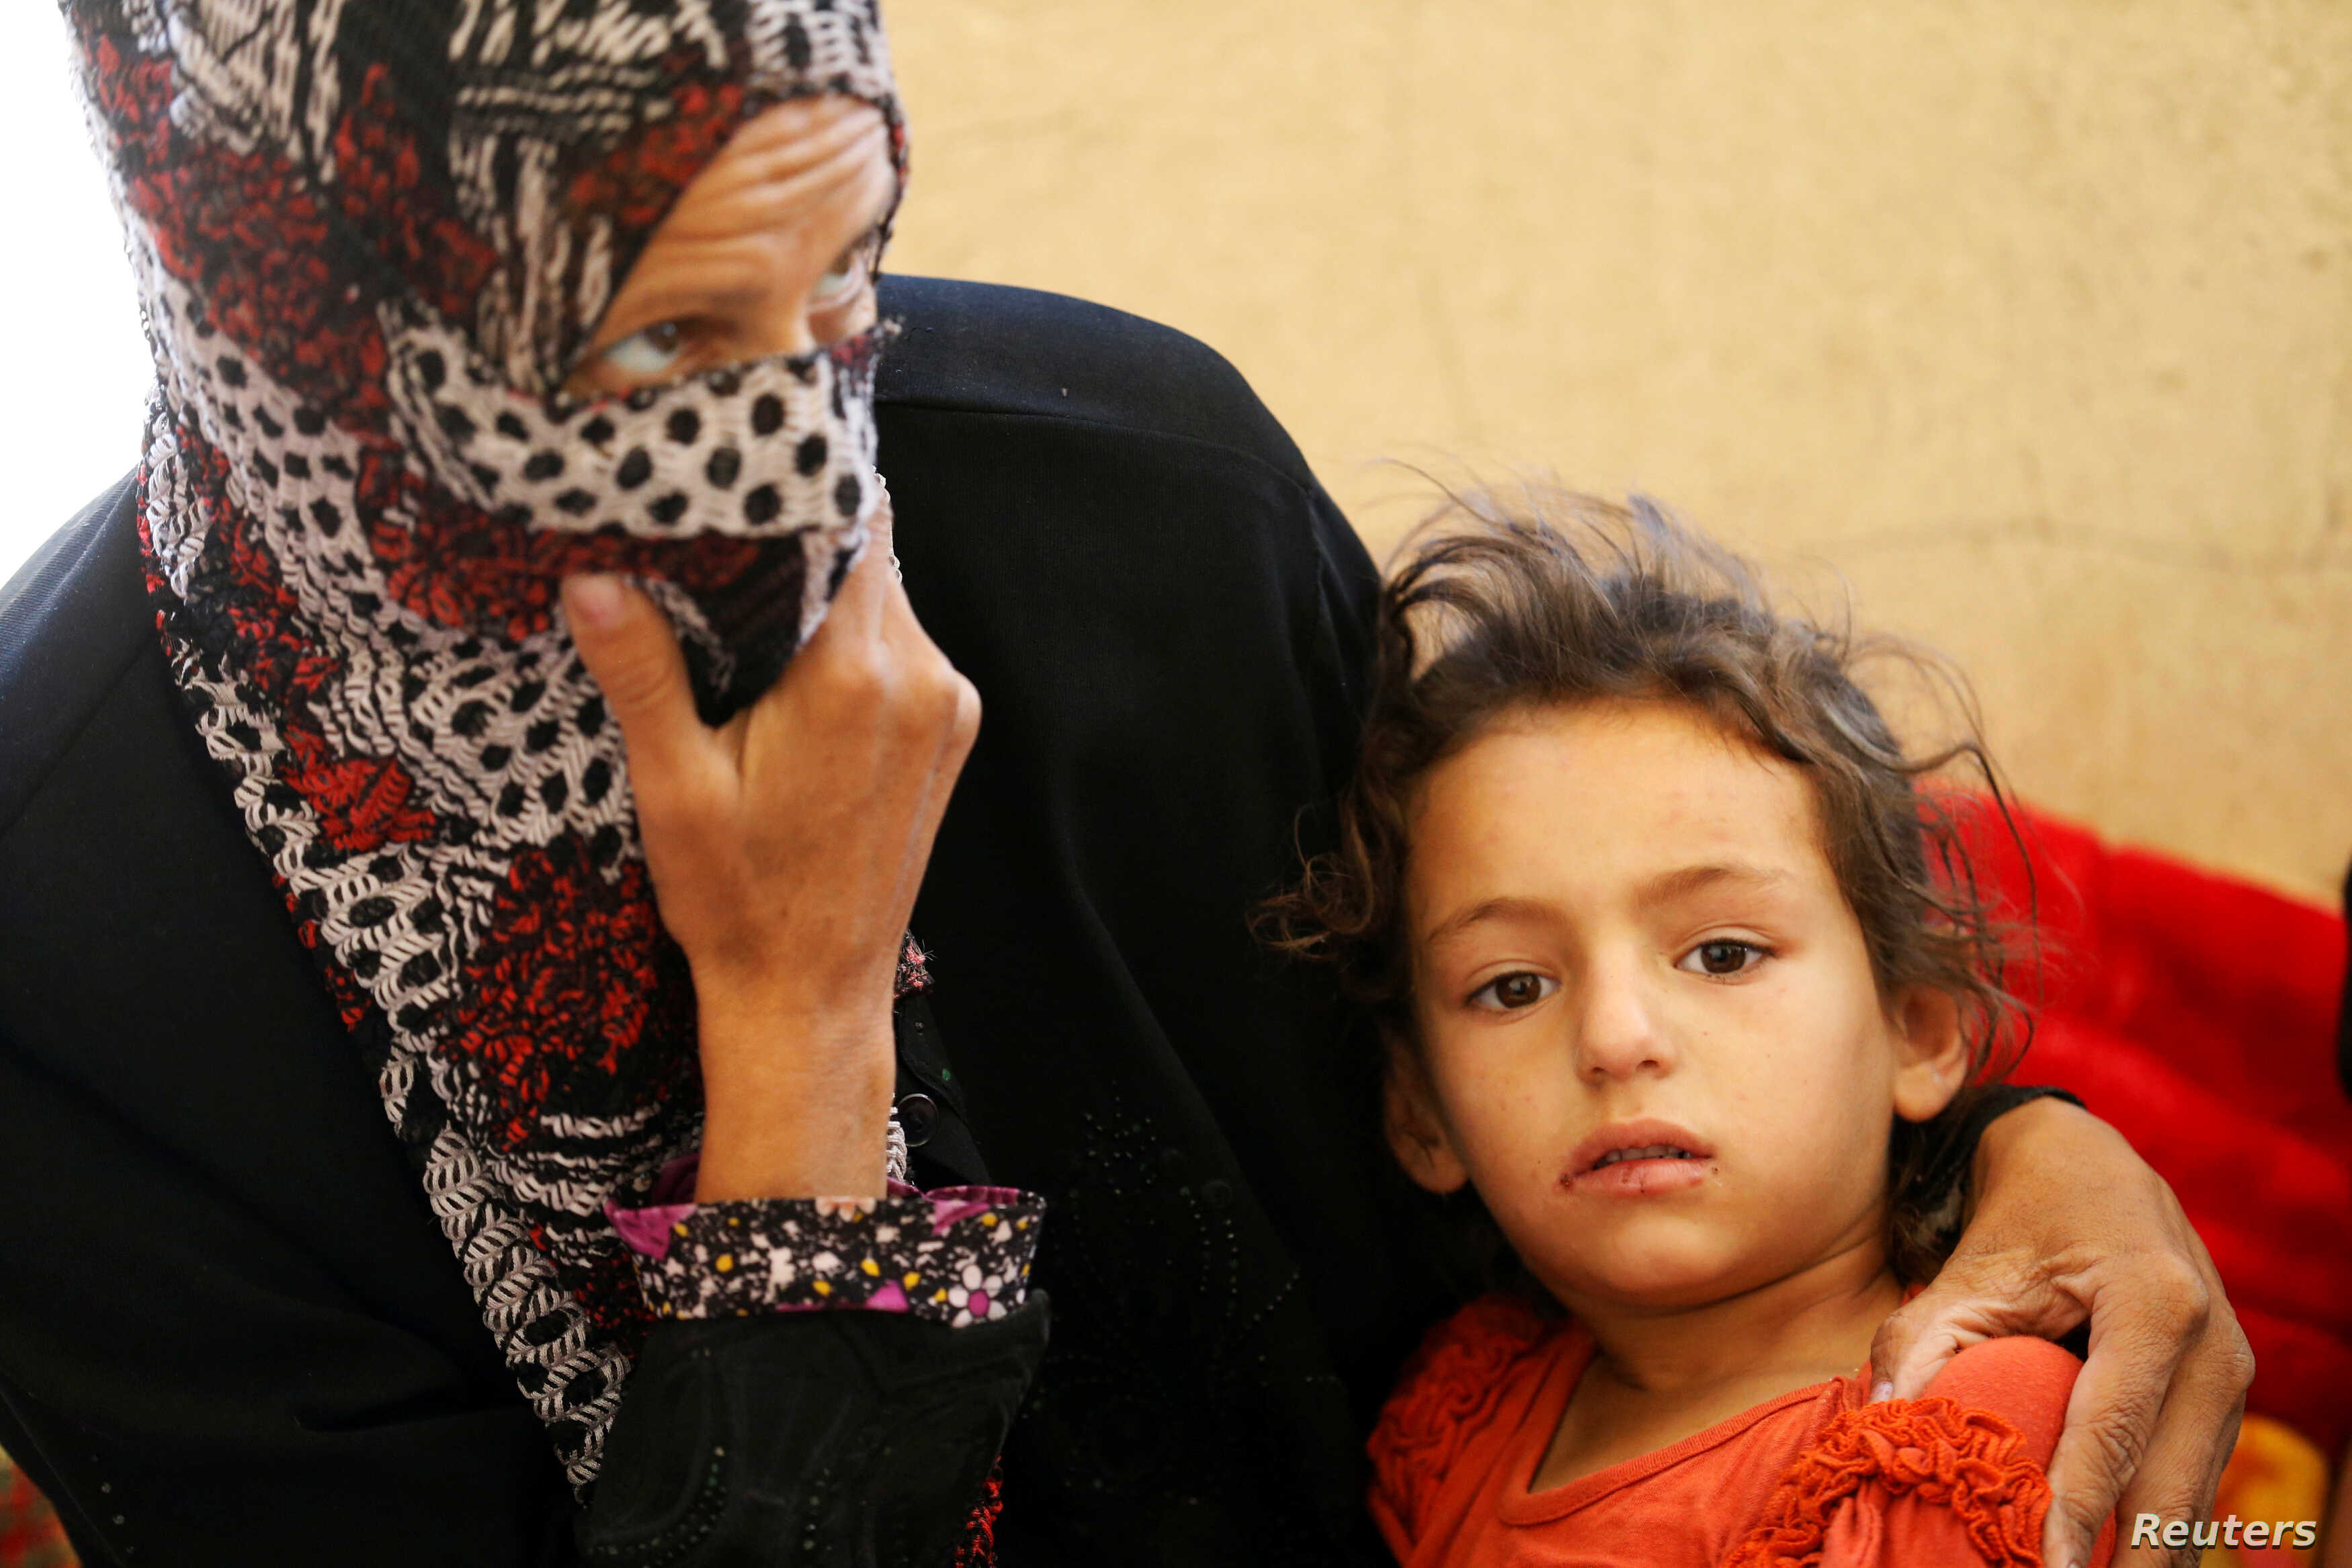 Civilians who fled their homes due to clashes on the outskirts of Falluja, gather in the town of Garma, Iraq, May 30, 2016.